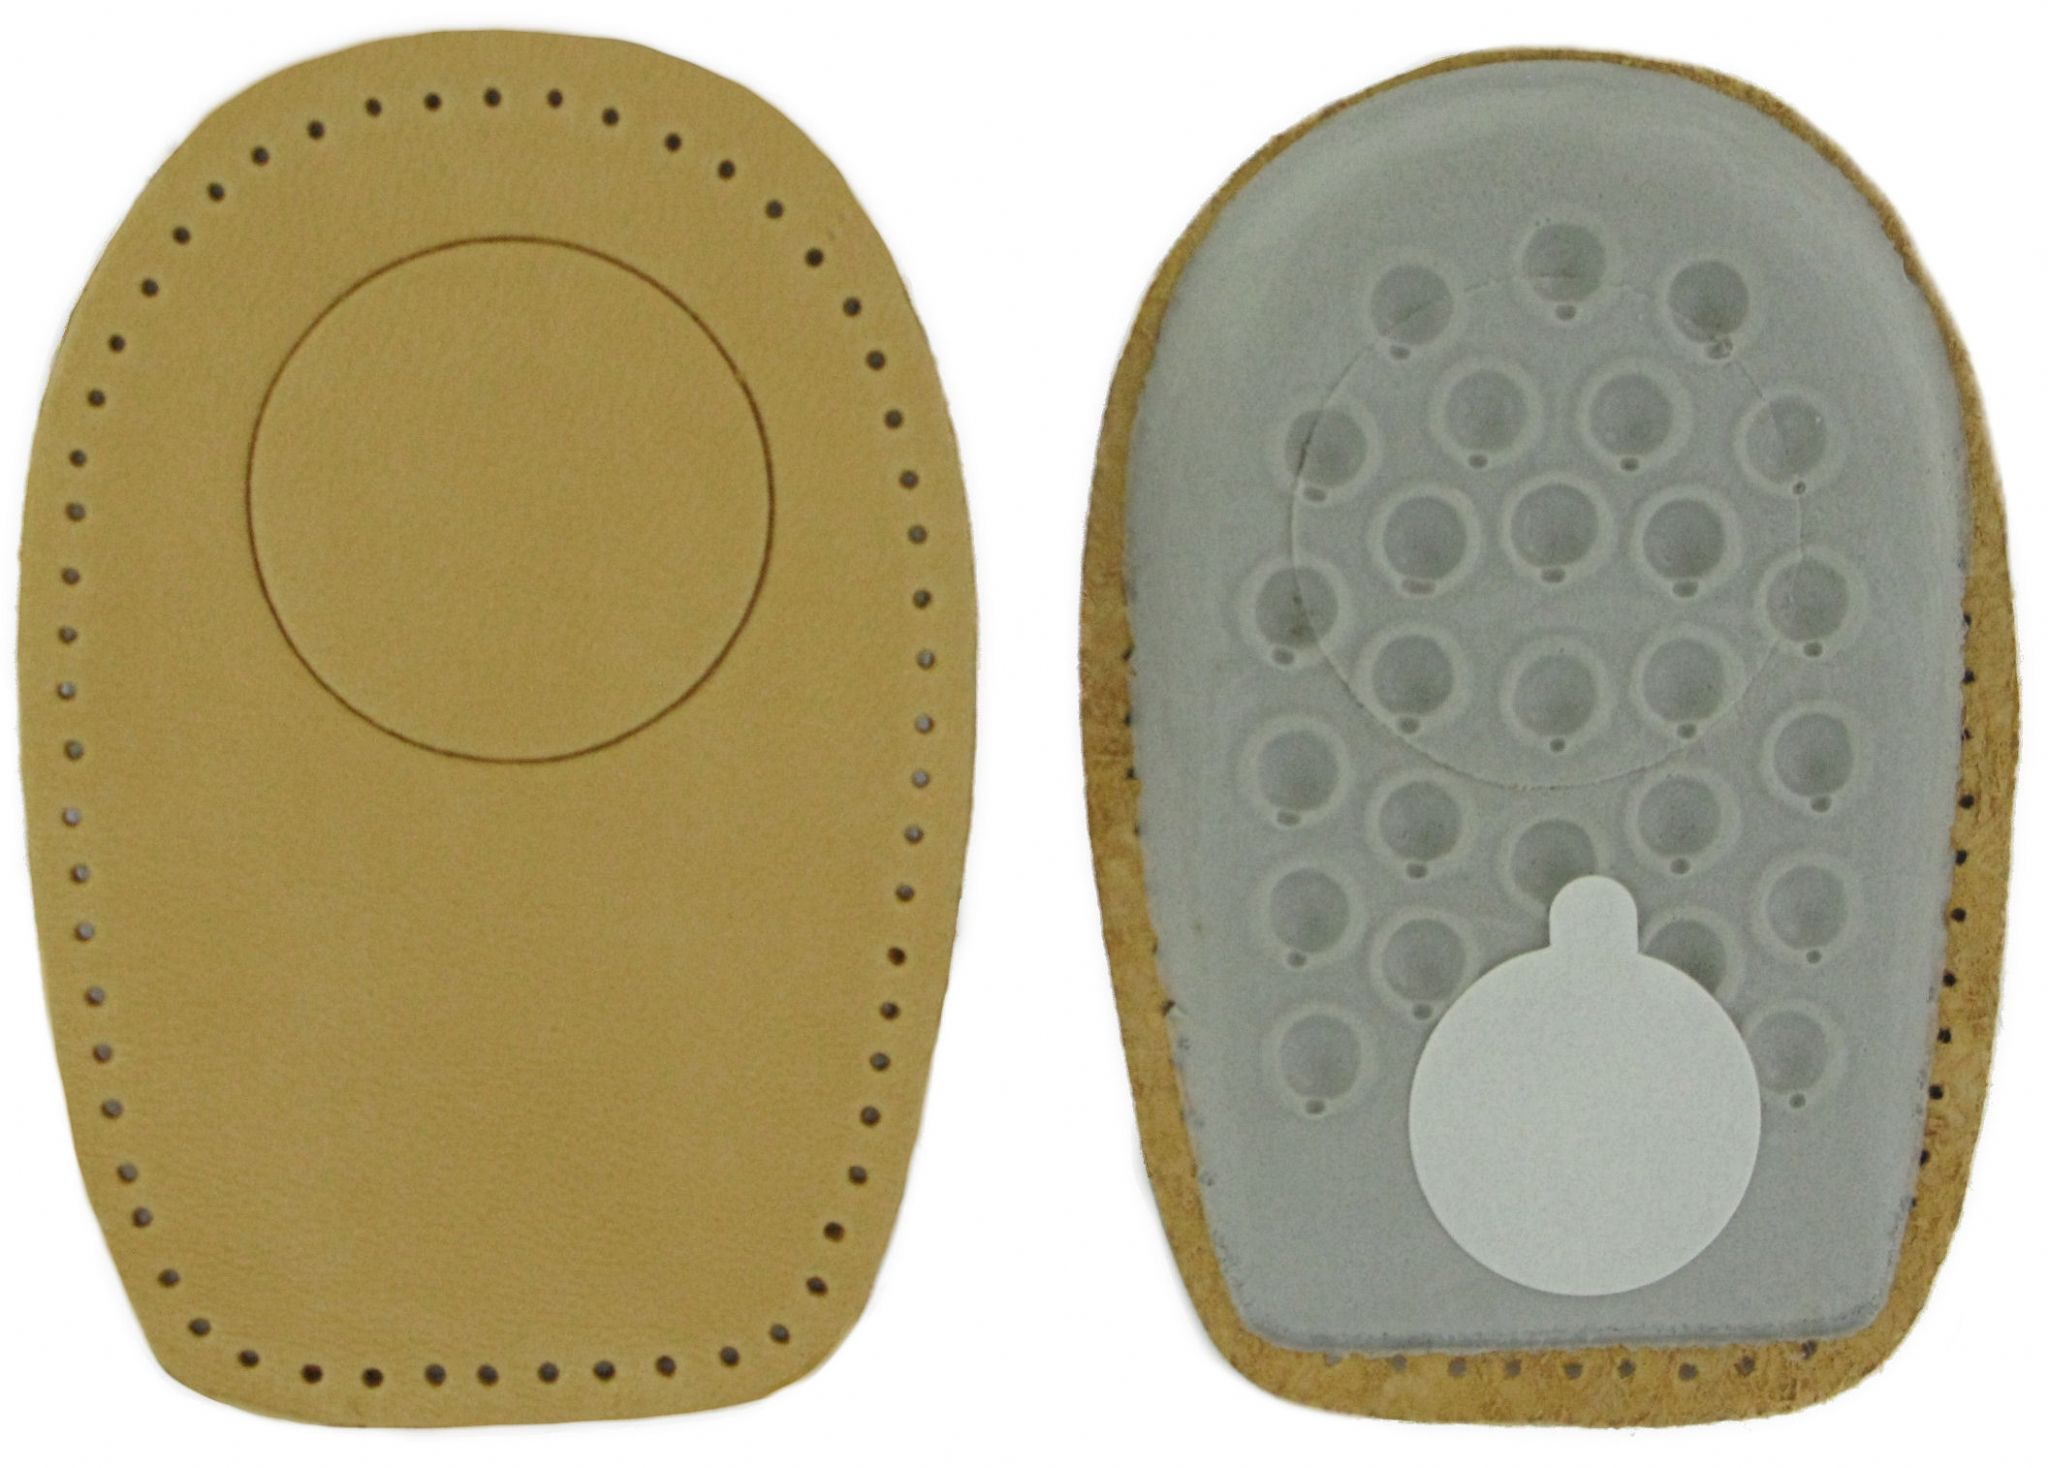 aec76c90f2 Heel Spur Cushion Pads - Leather Men`s & Ladies Sizes UK 2-12 Eur 35-46